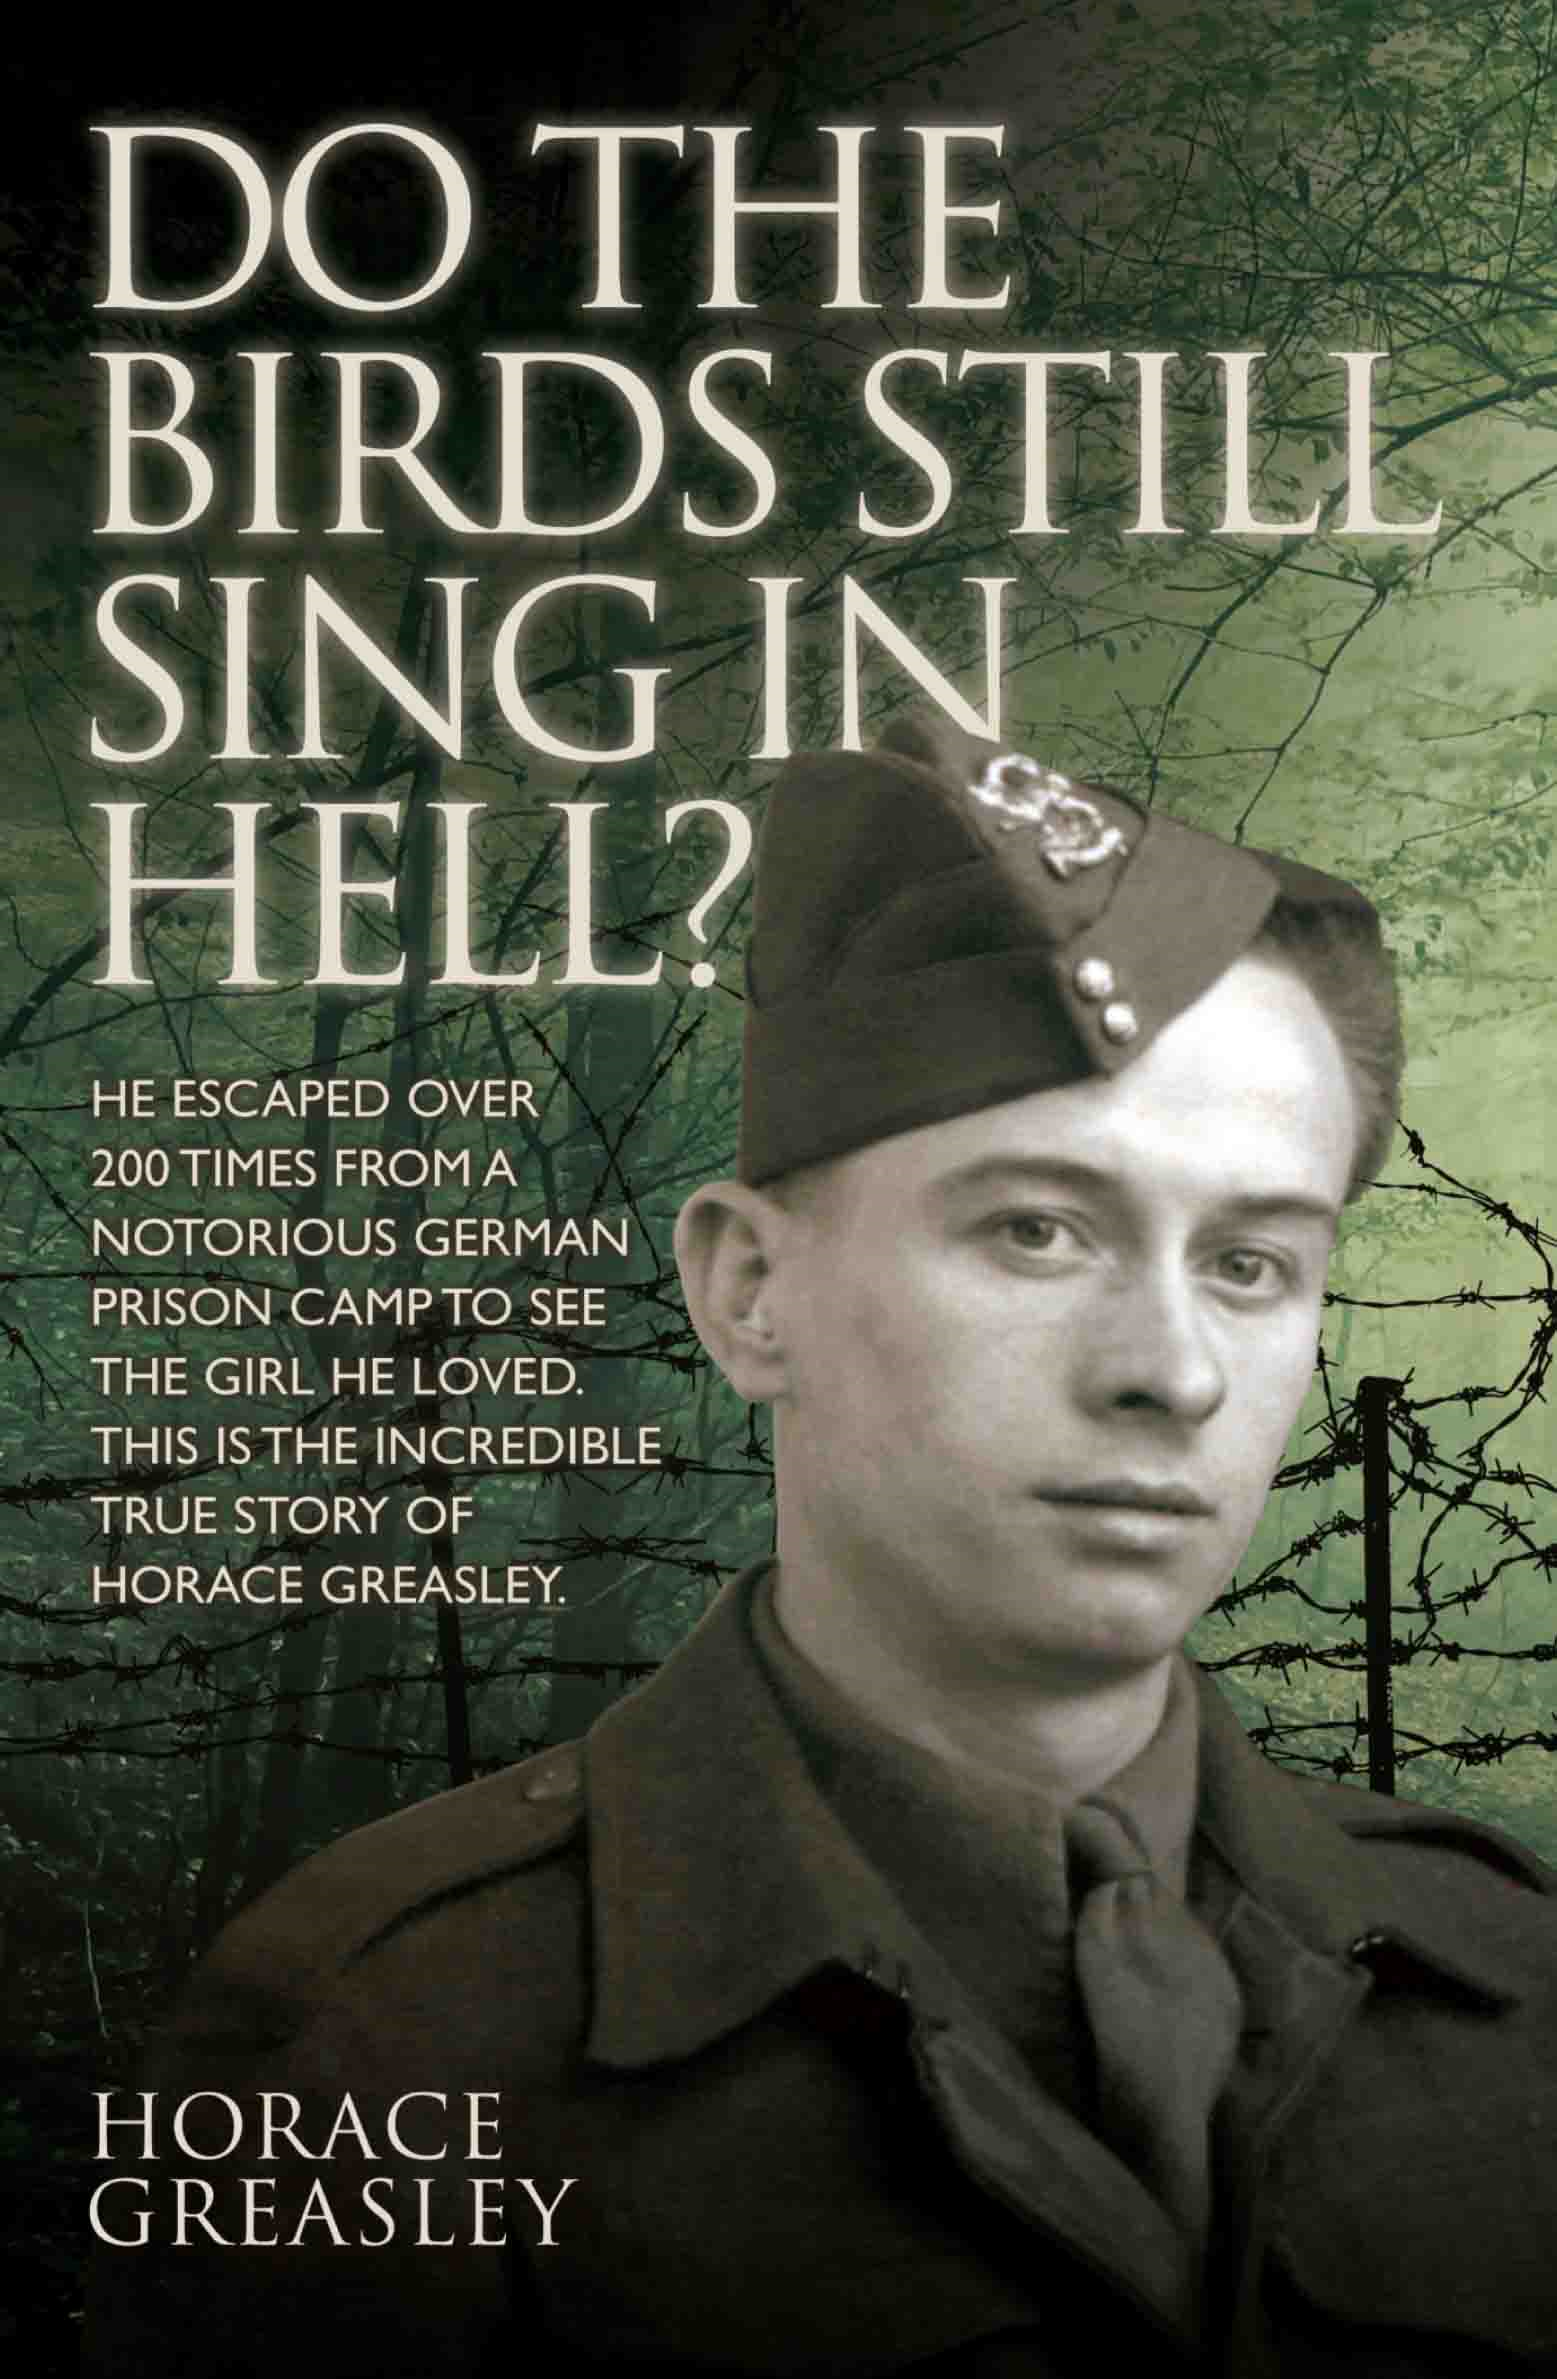 Do the Birds Still Sing in Hell? - He escaped over 200 times from a notorious German prison camp to see the girl he loved. This is the incredible true